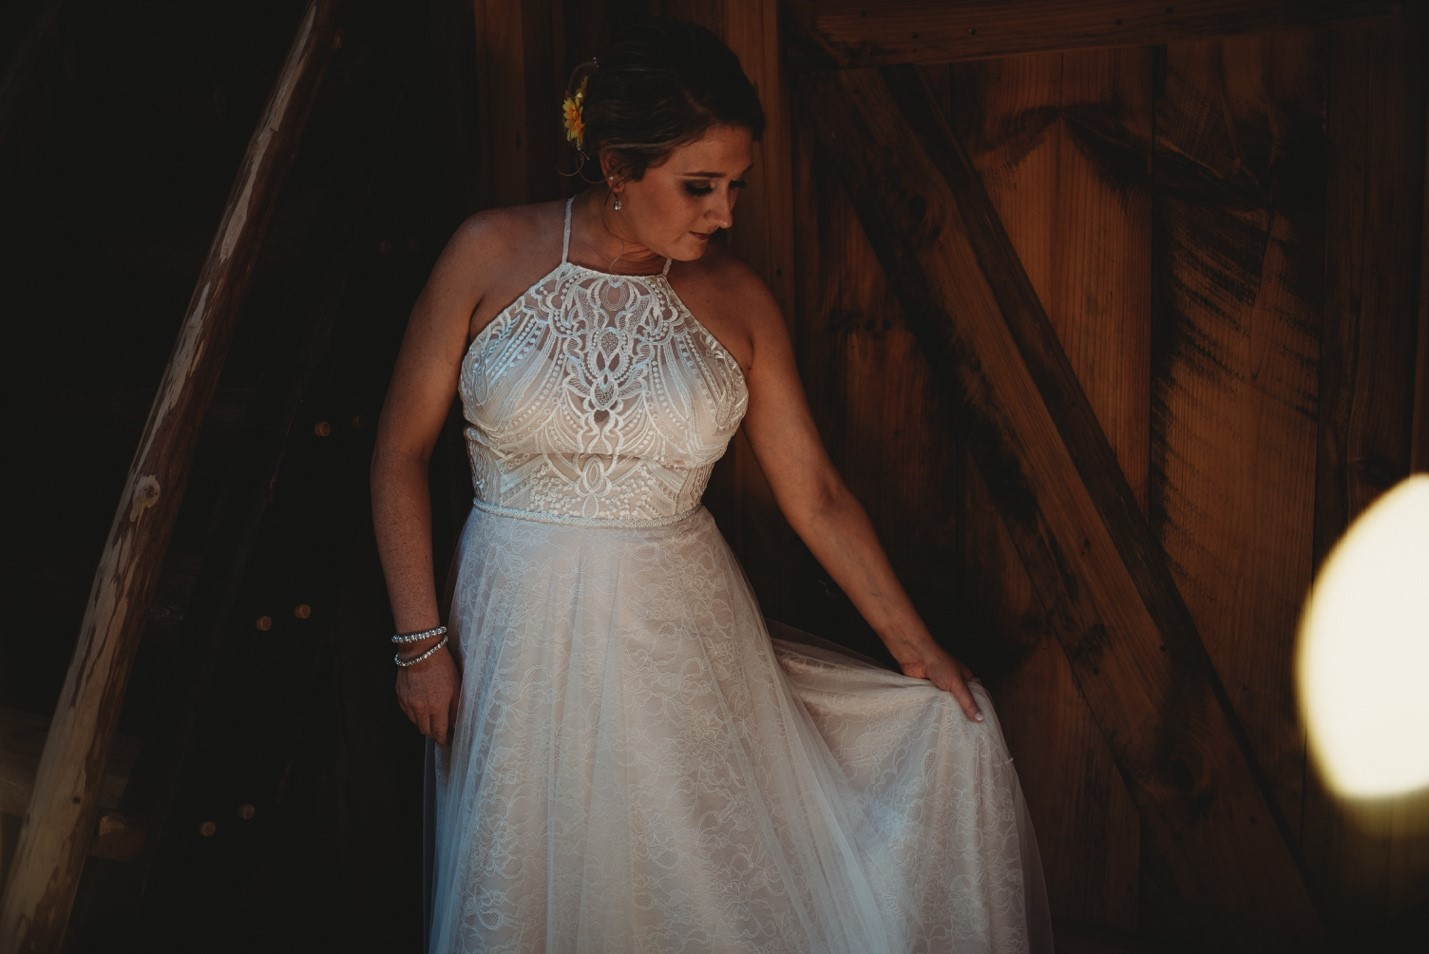 Allison in her gorgeous boho style gown with crochet detailing